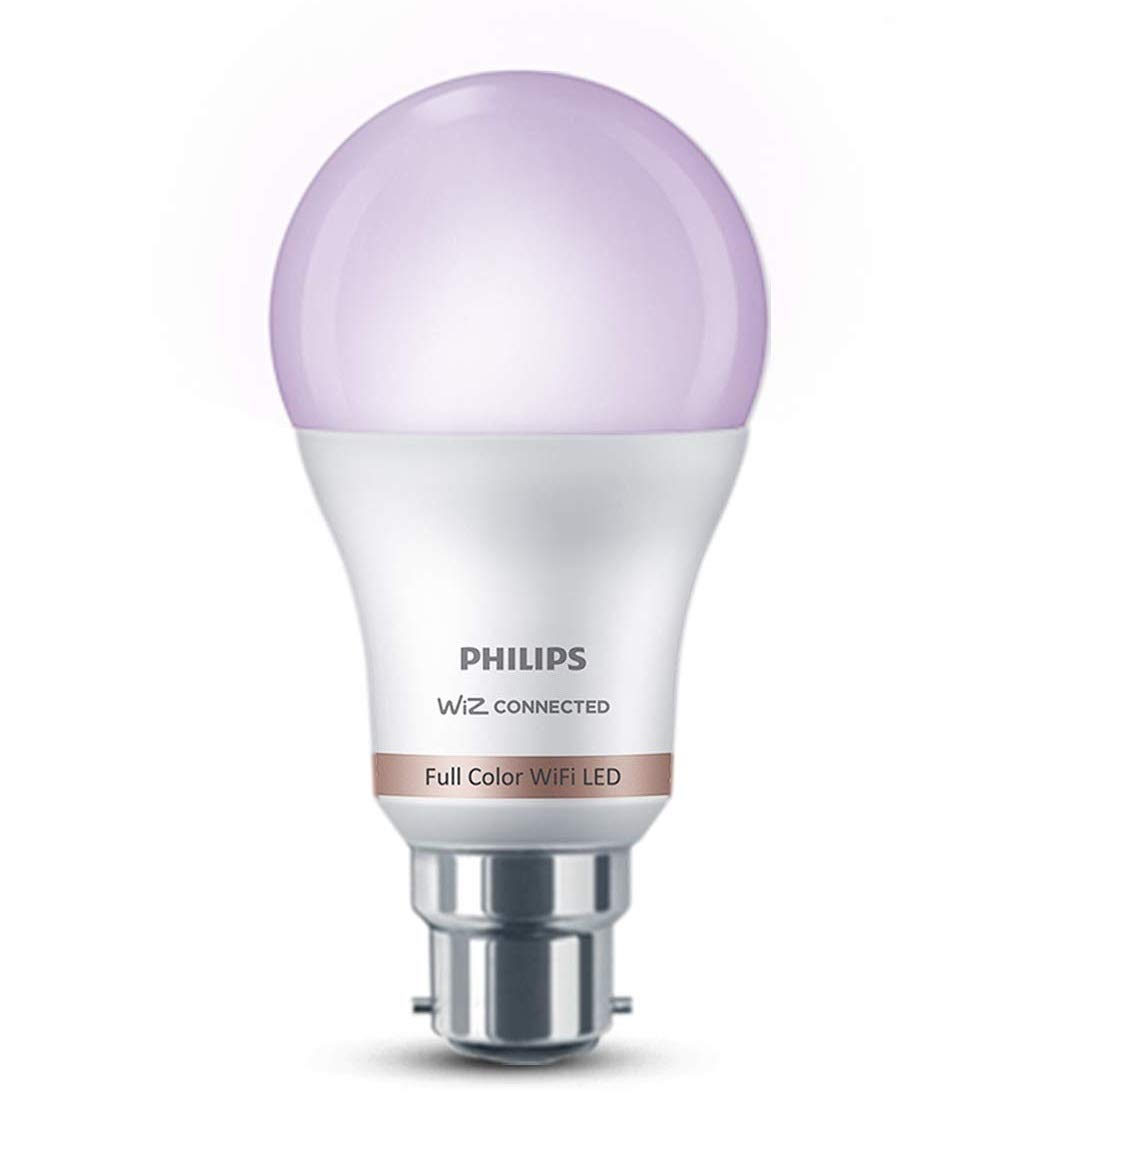 Philips Smart Wi-Fi LED Bulb B22 10-Watt WiZ Connected (16 Million Colors + Warm White/Neutral White/White + Dimmable + Pre-Set...